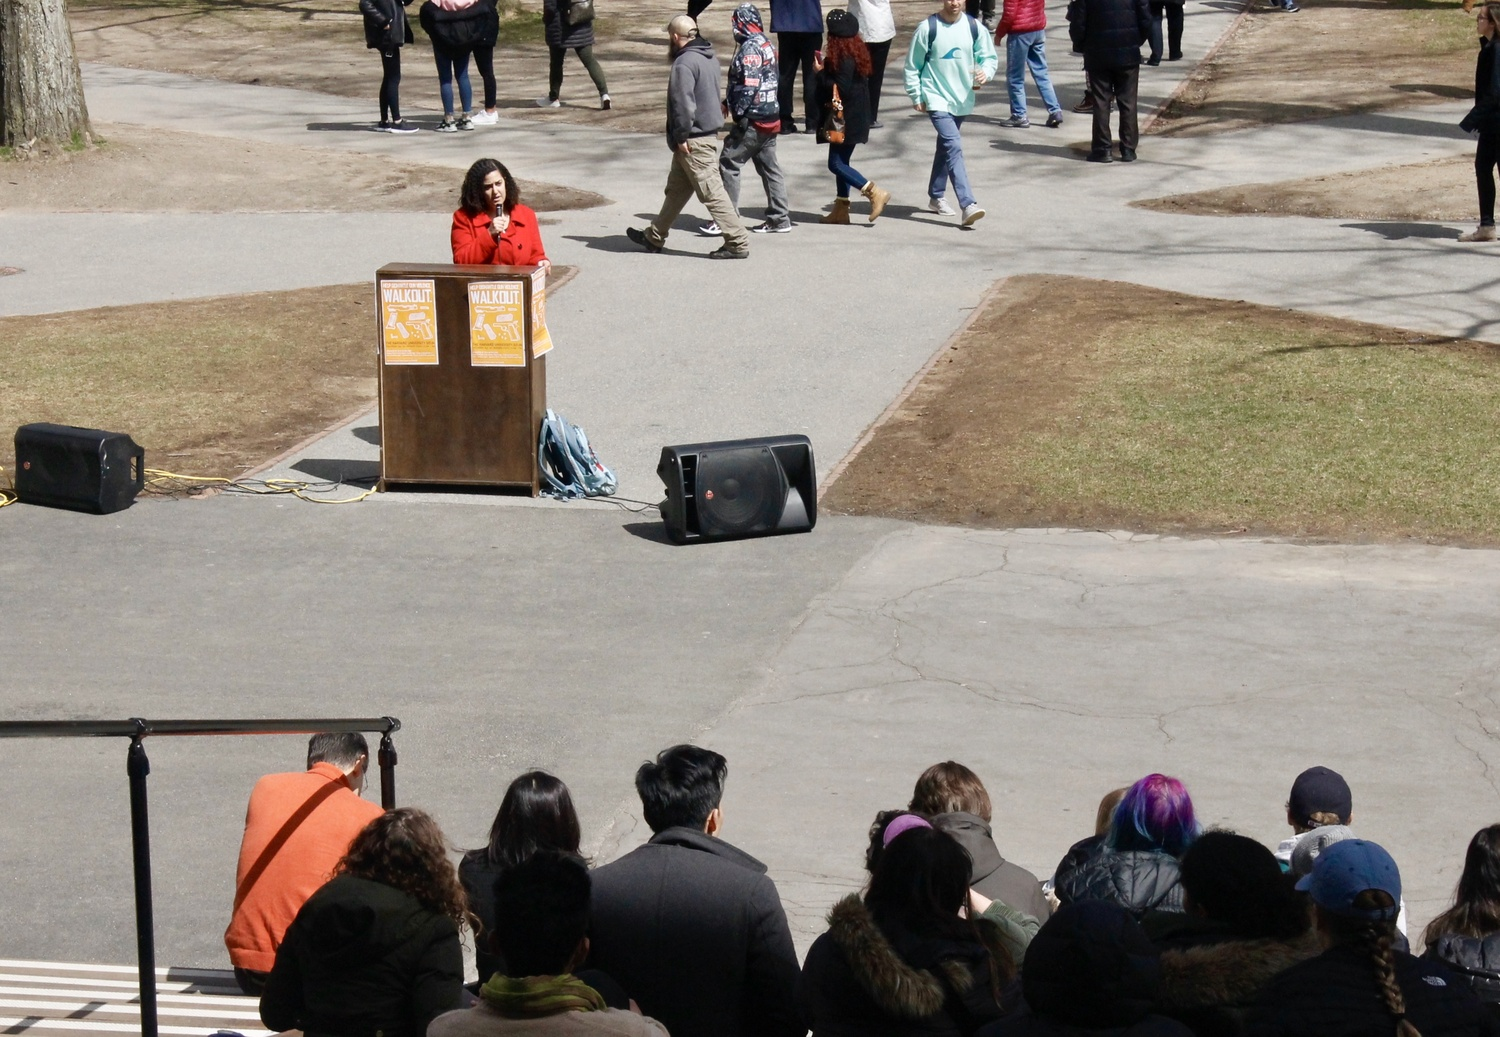 Students gathered on Widener steps Friday morning as part of a national day of school walkouts to mark the 19th anniversary of the Columbine shooting.